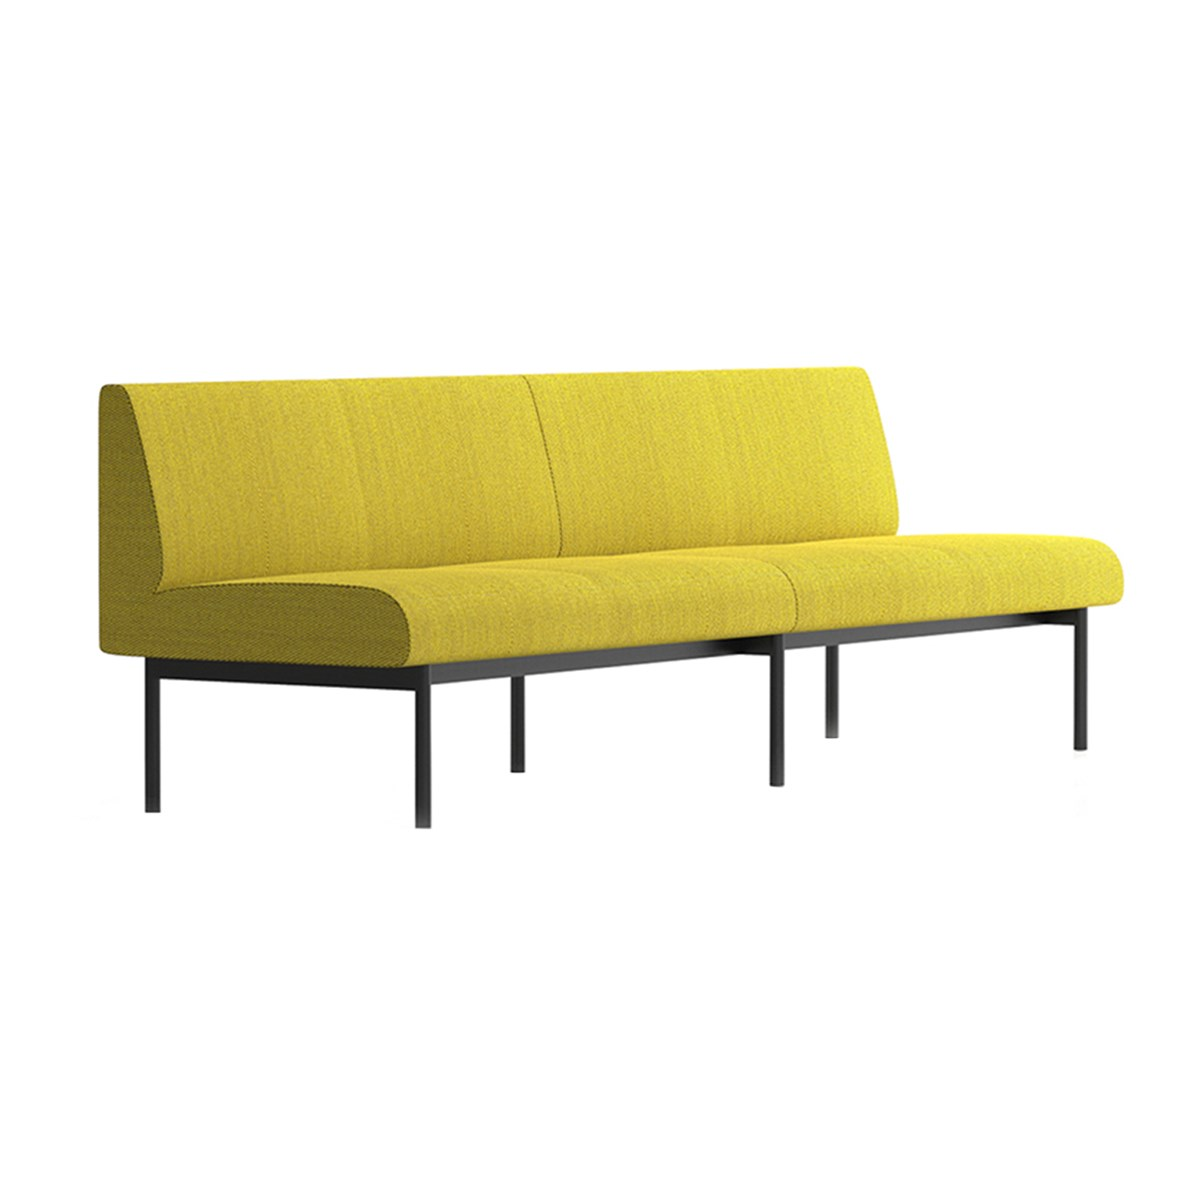 Neospace-Convey-Sofa-System-Contract-Matisse-1